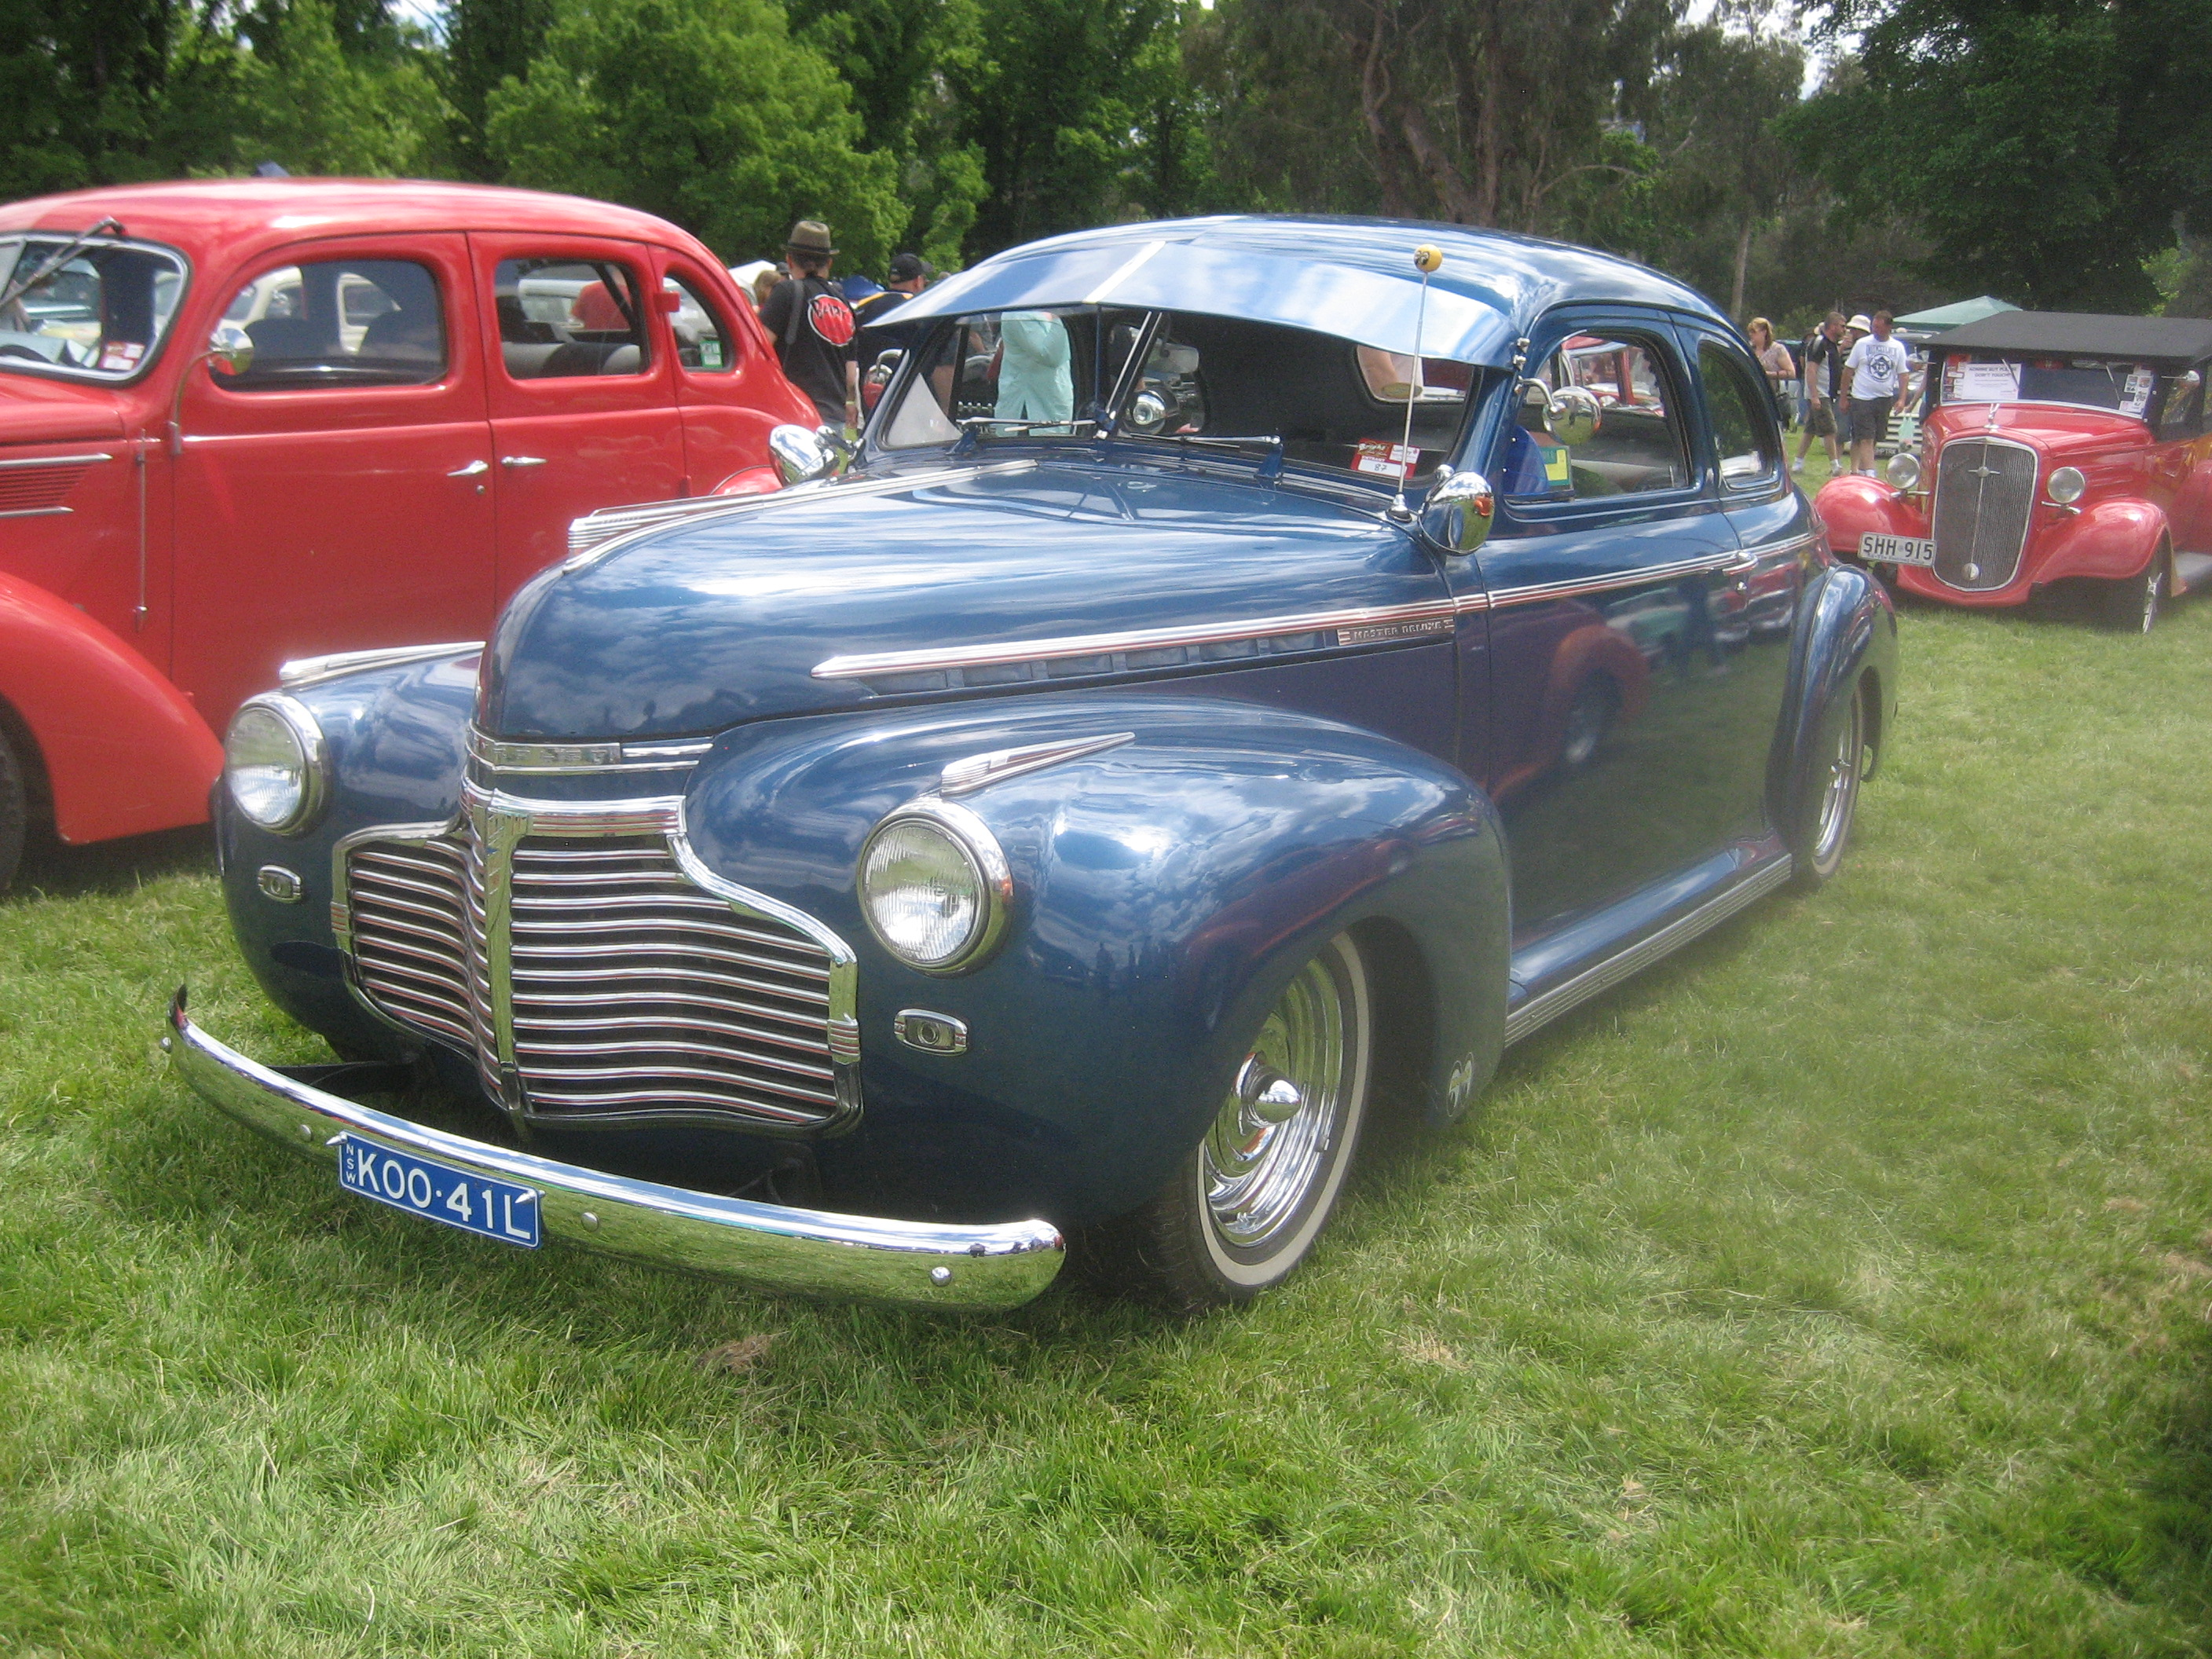 File:1941 Chevrolet Master Deluxe Coupe jpg - Wikimedia Commons